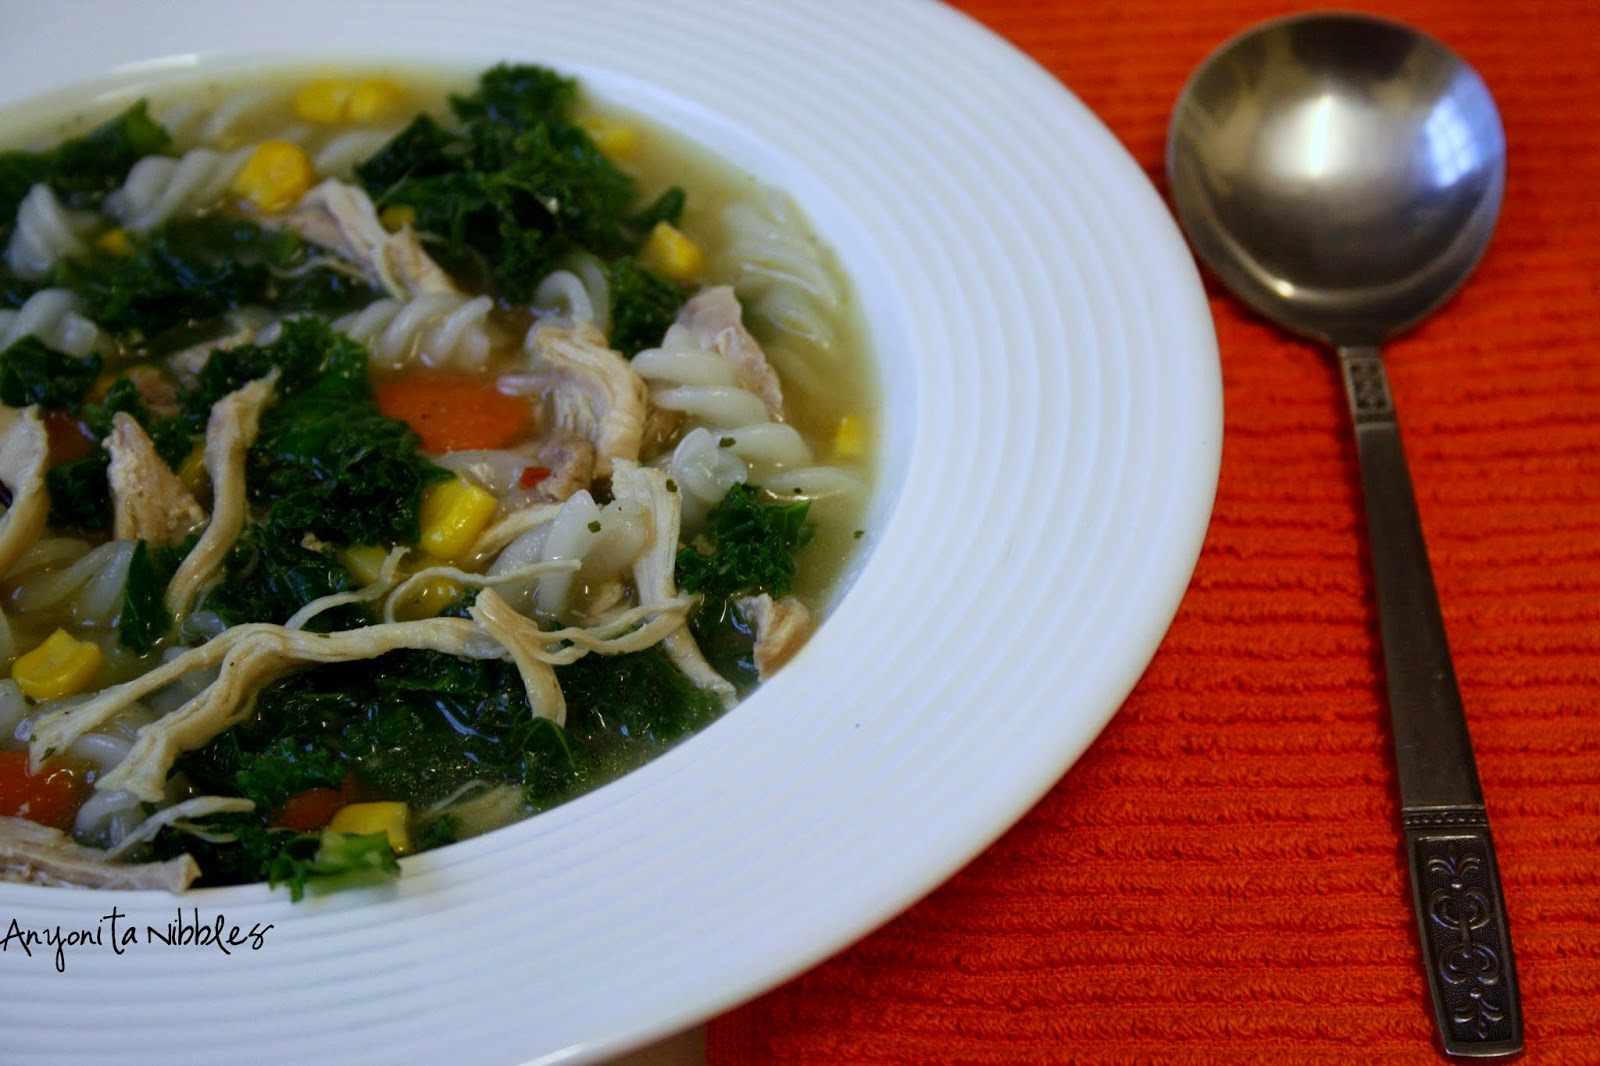 Gluten Free Jewish Penicillin with Kale | Anyonita Nibbles